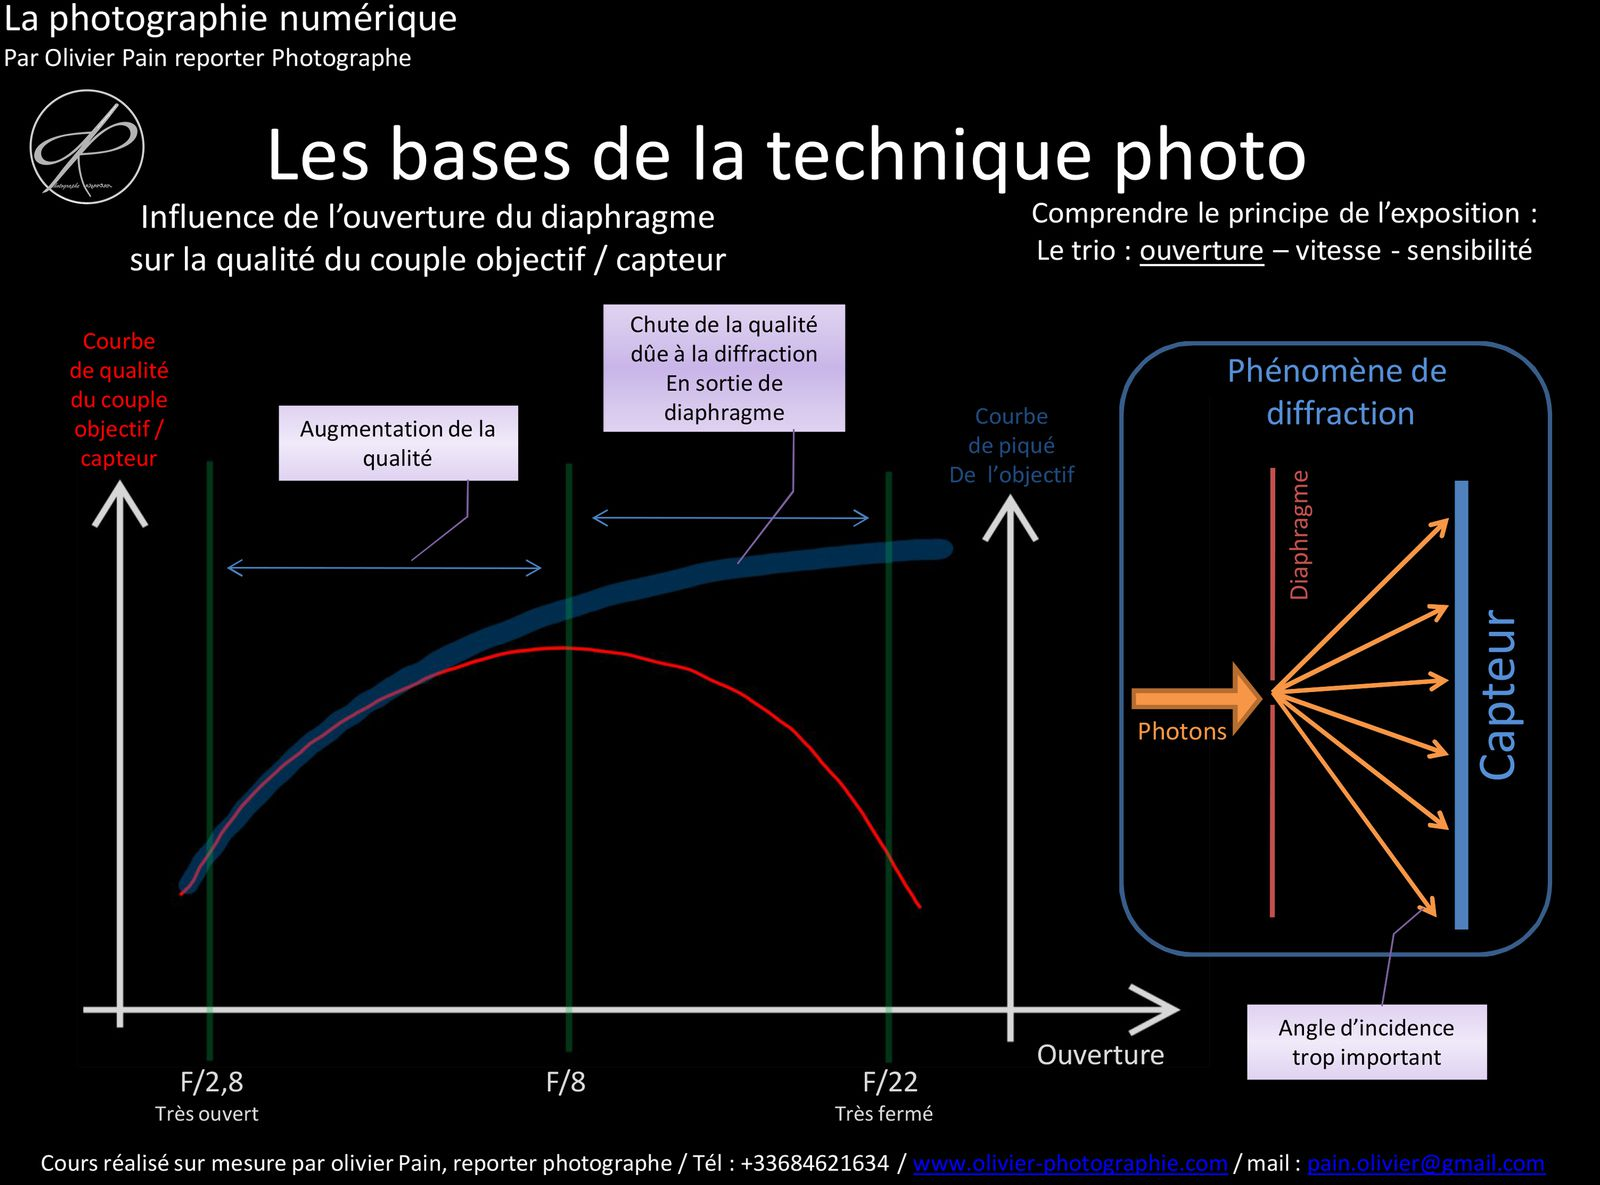 Extraits de publications sur Facebook et Instagram : La diffraction et diaphragme